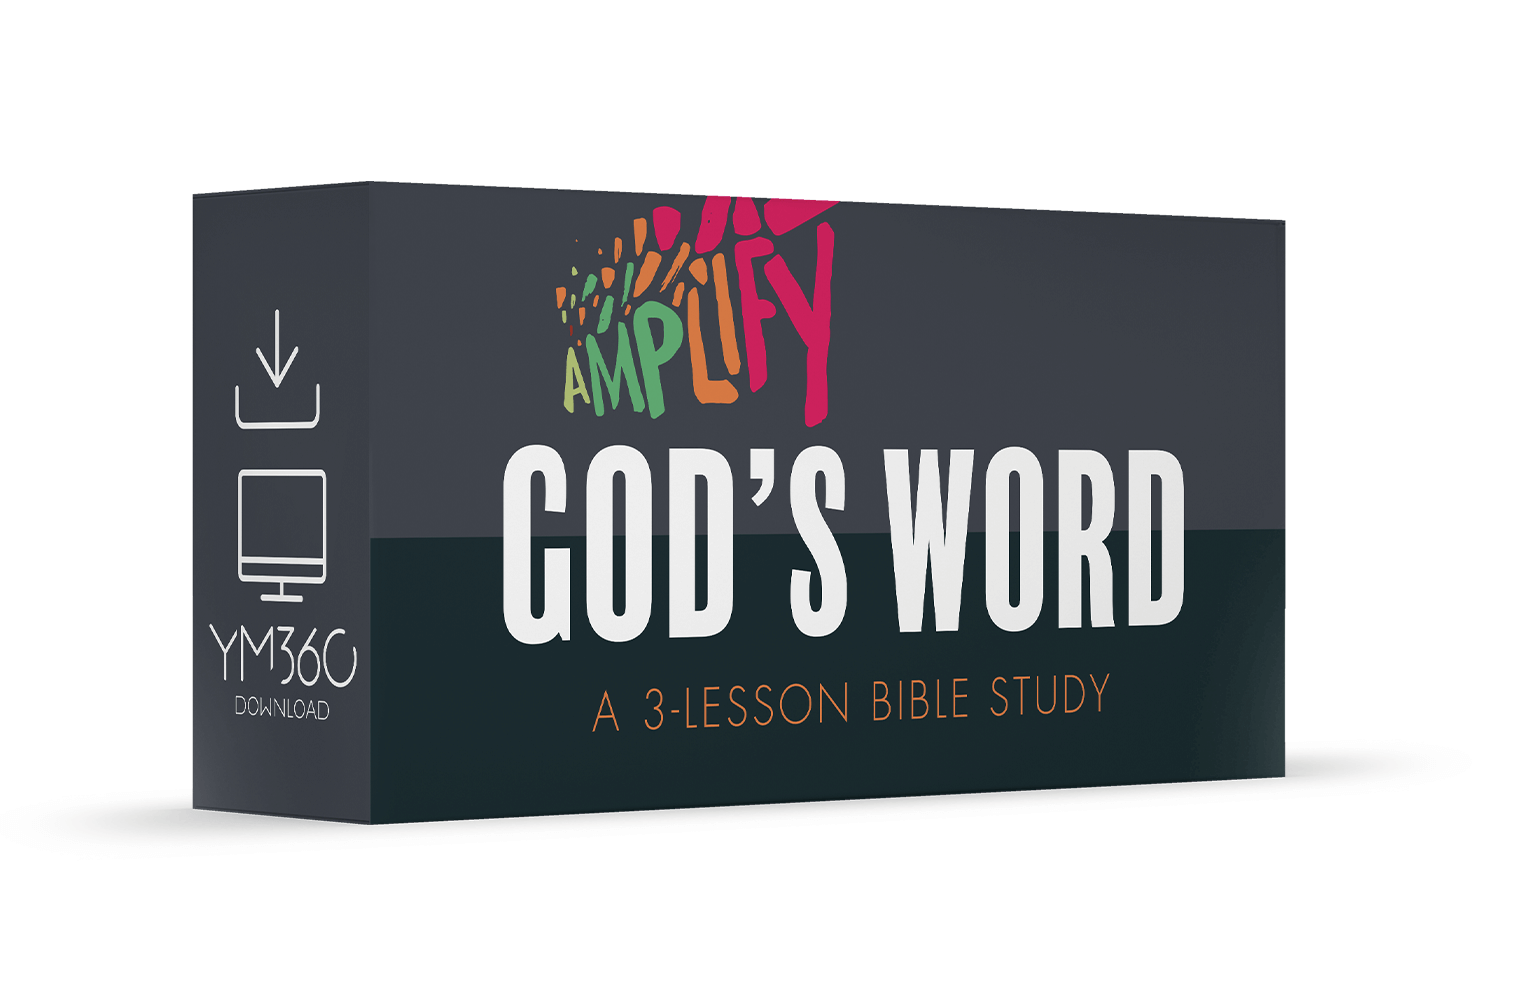 God's Word: A 3-Lesson Bible Study